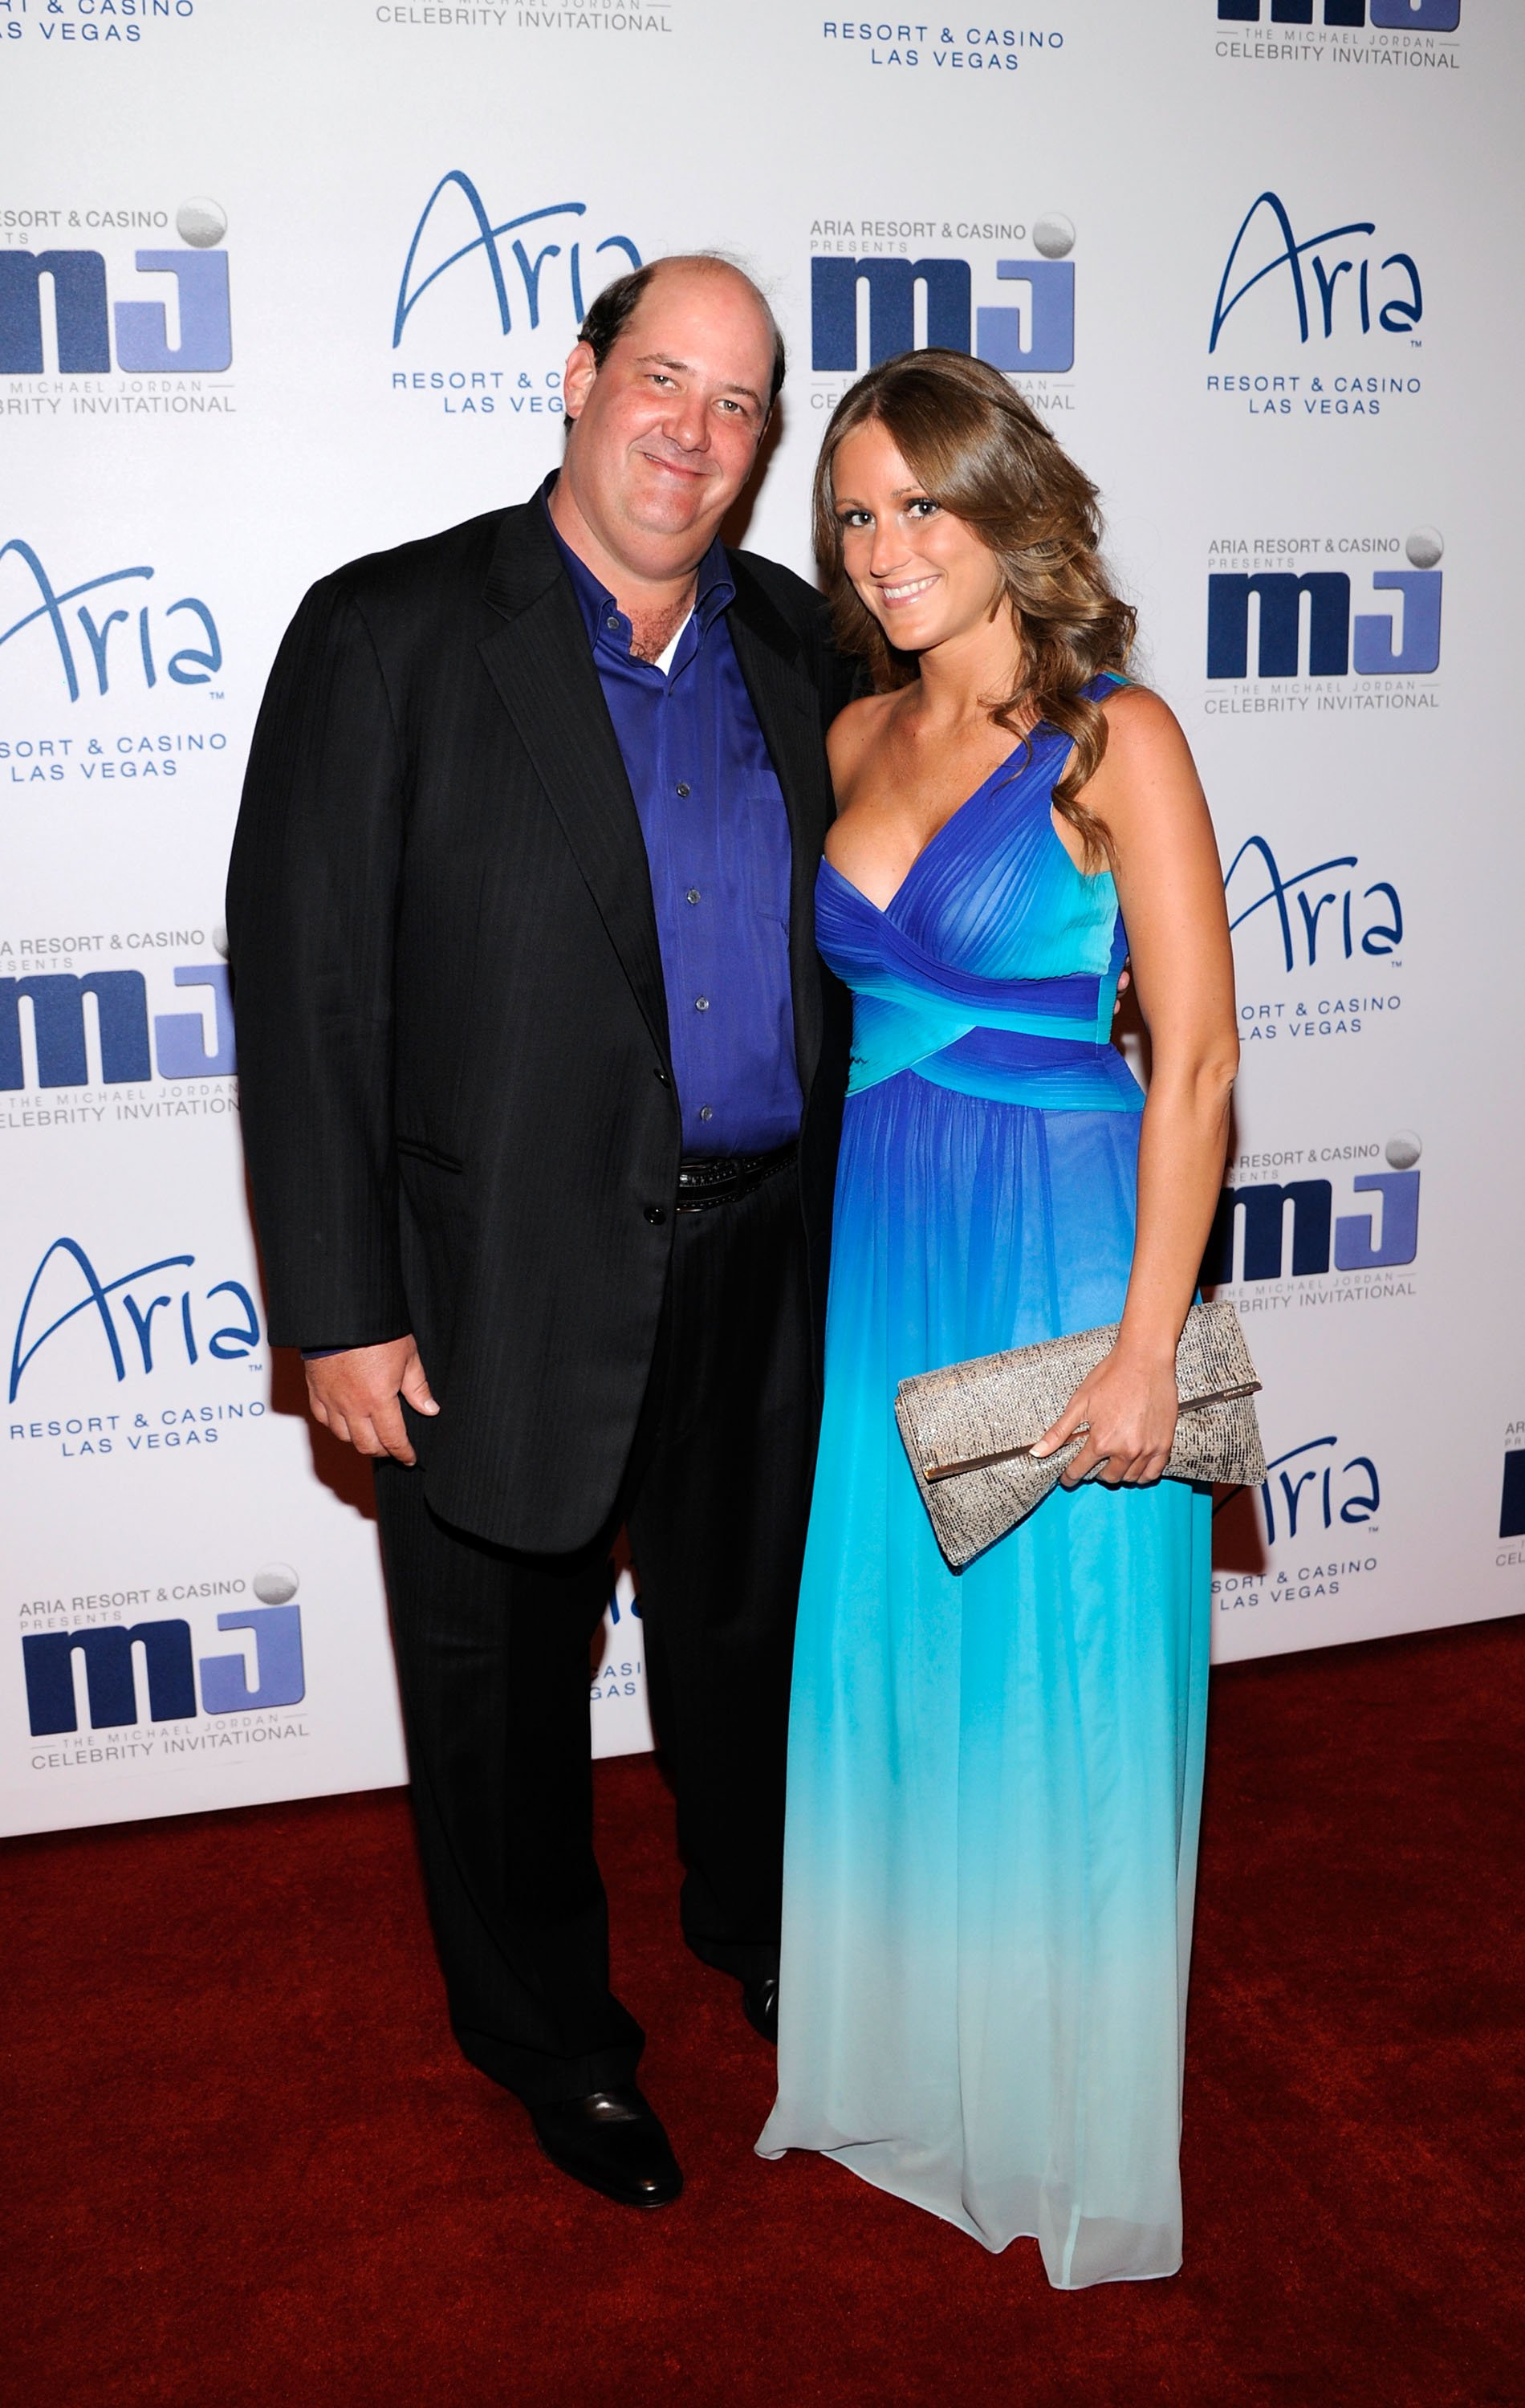 Brian Baumgartner and Celeste Ackelson arrive at the 11th annual Michael Jordan Celebrity Invitational gala at the Aria Resort & Casino at CityCenter March 30, 2011 in Las Vegas, Nevada   Photo: Getty Images